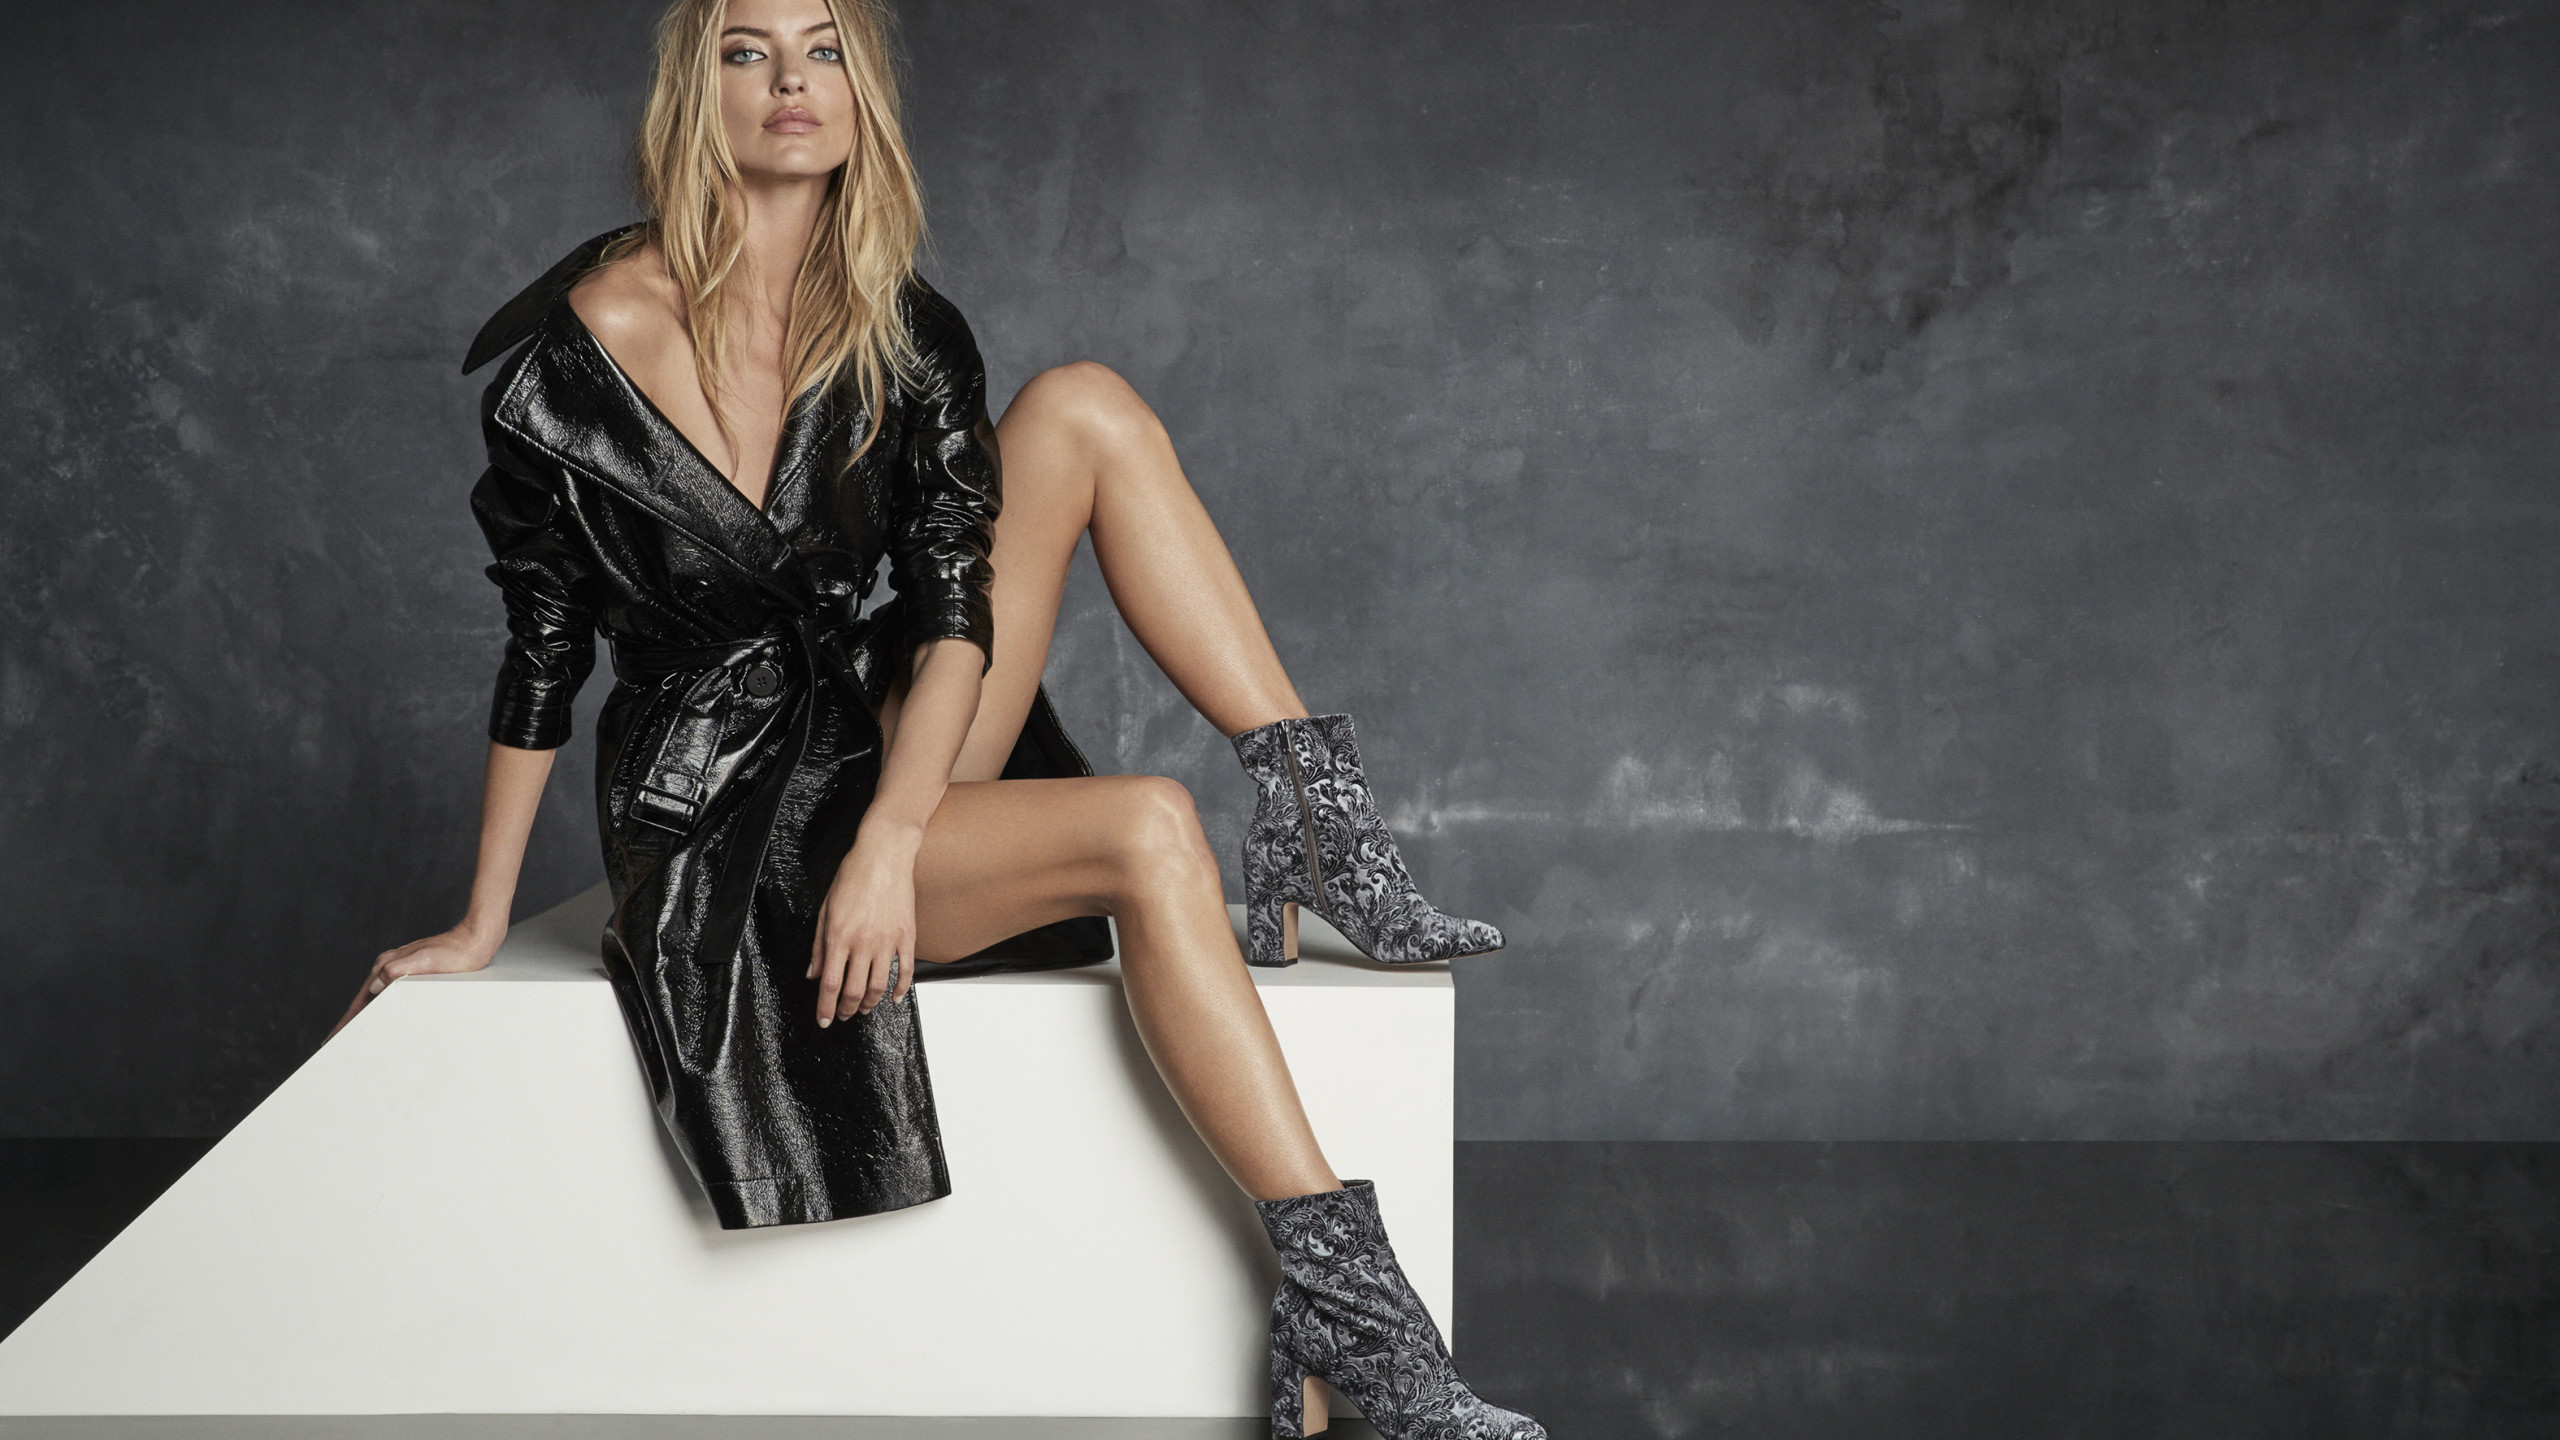 hot martha hunt outfit wallpaper 70374